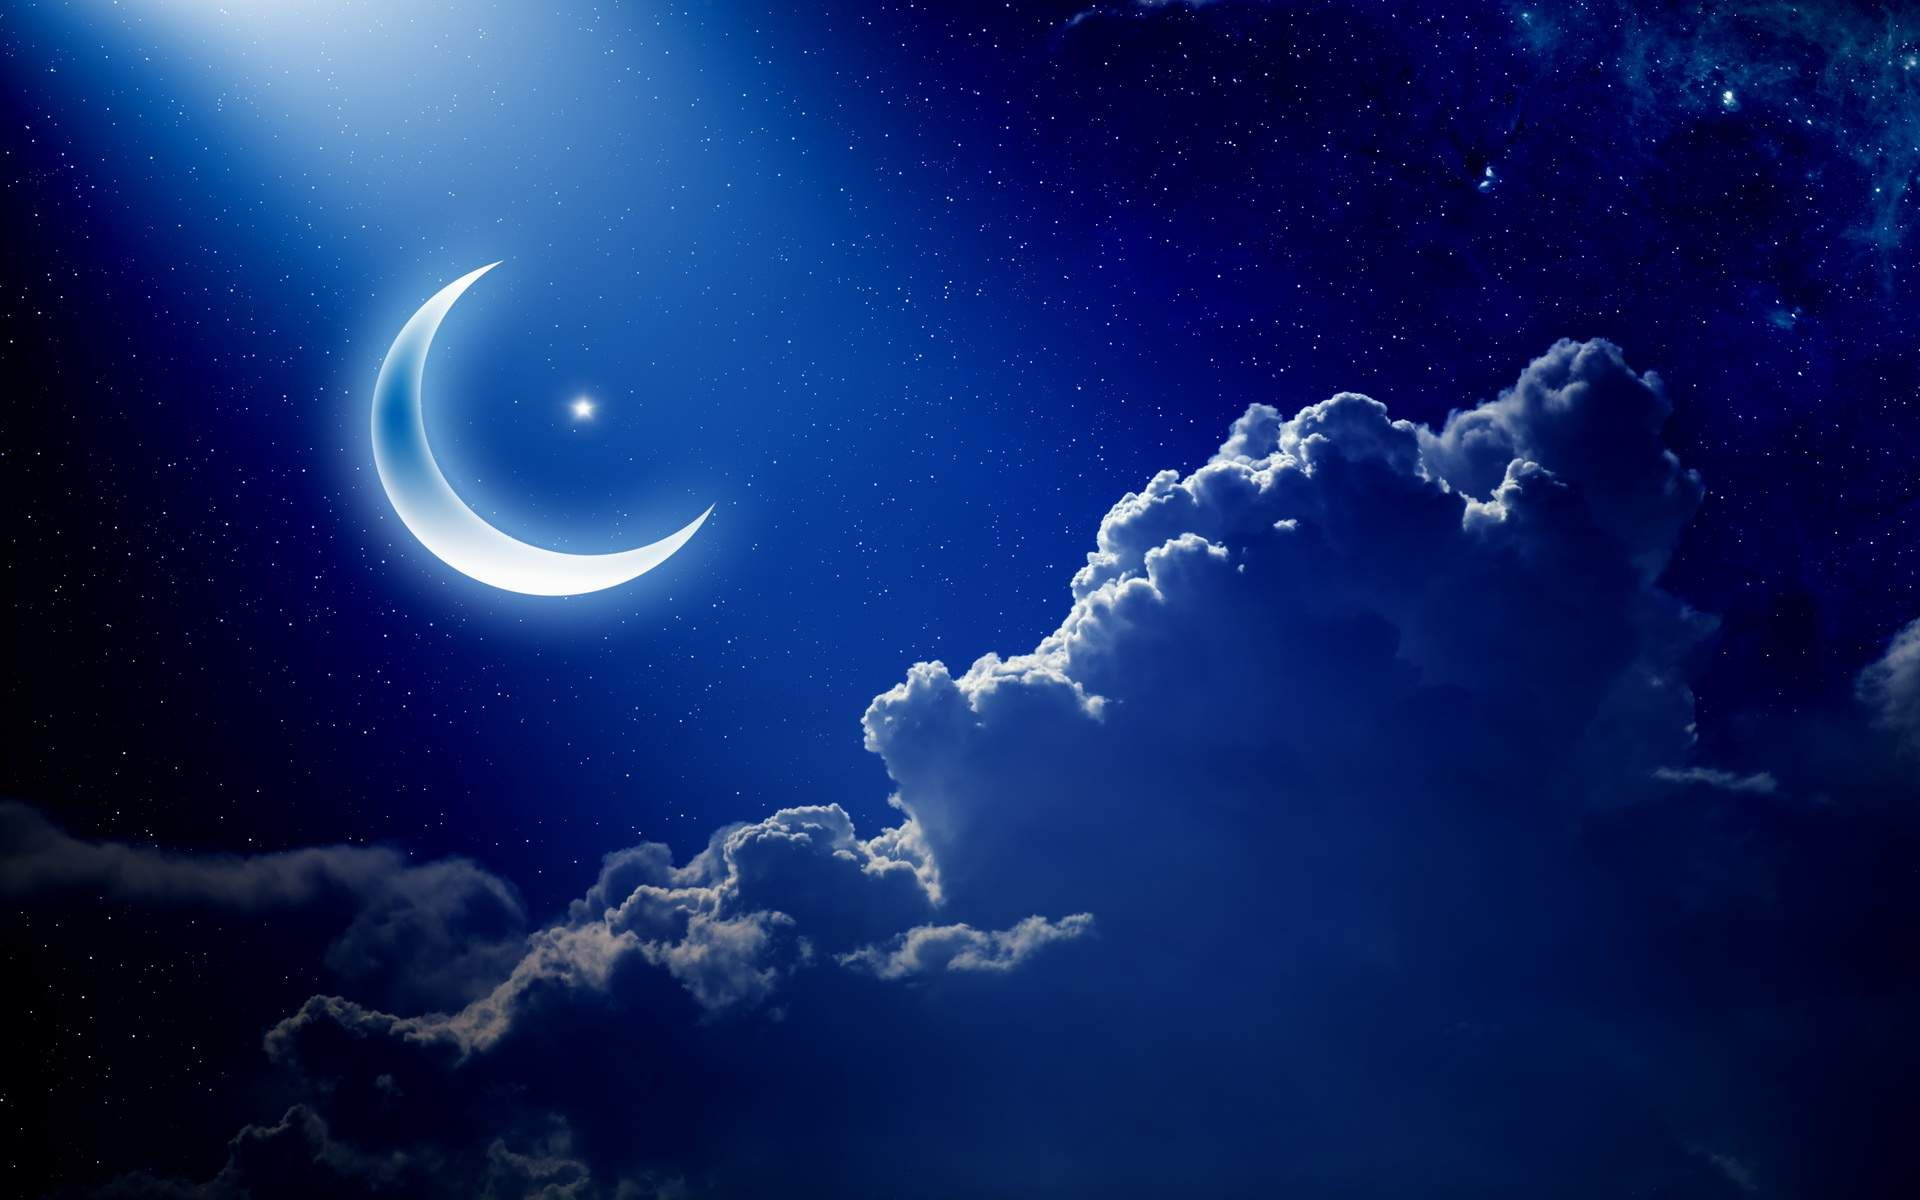 Crescent Moon Wallpaper For Desktop In High Resolution Download We Have Best Collection Of Phases And Beautiful Night HD